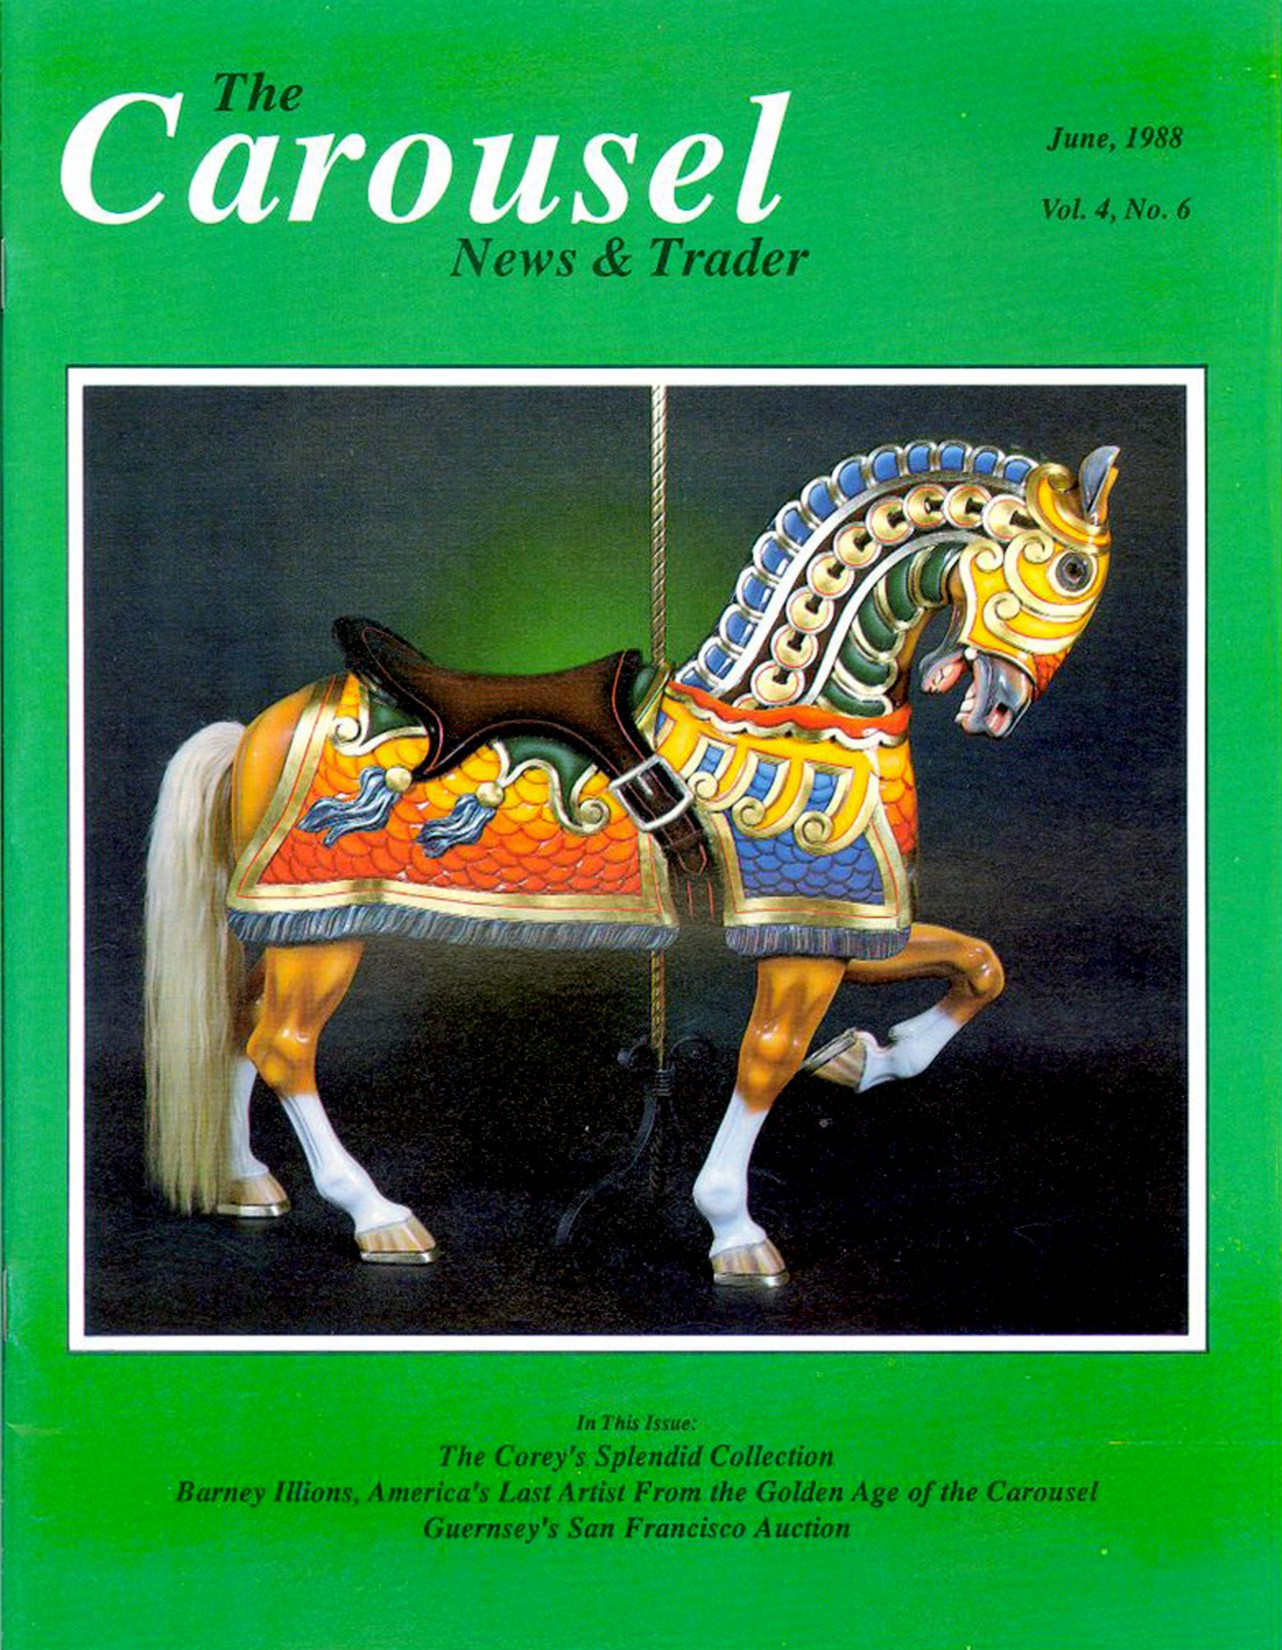 cnt_06_1988-cover-Stein-and-Goldstein-armored-horse